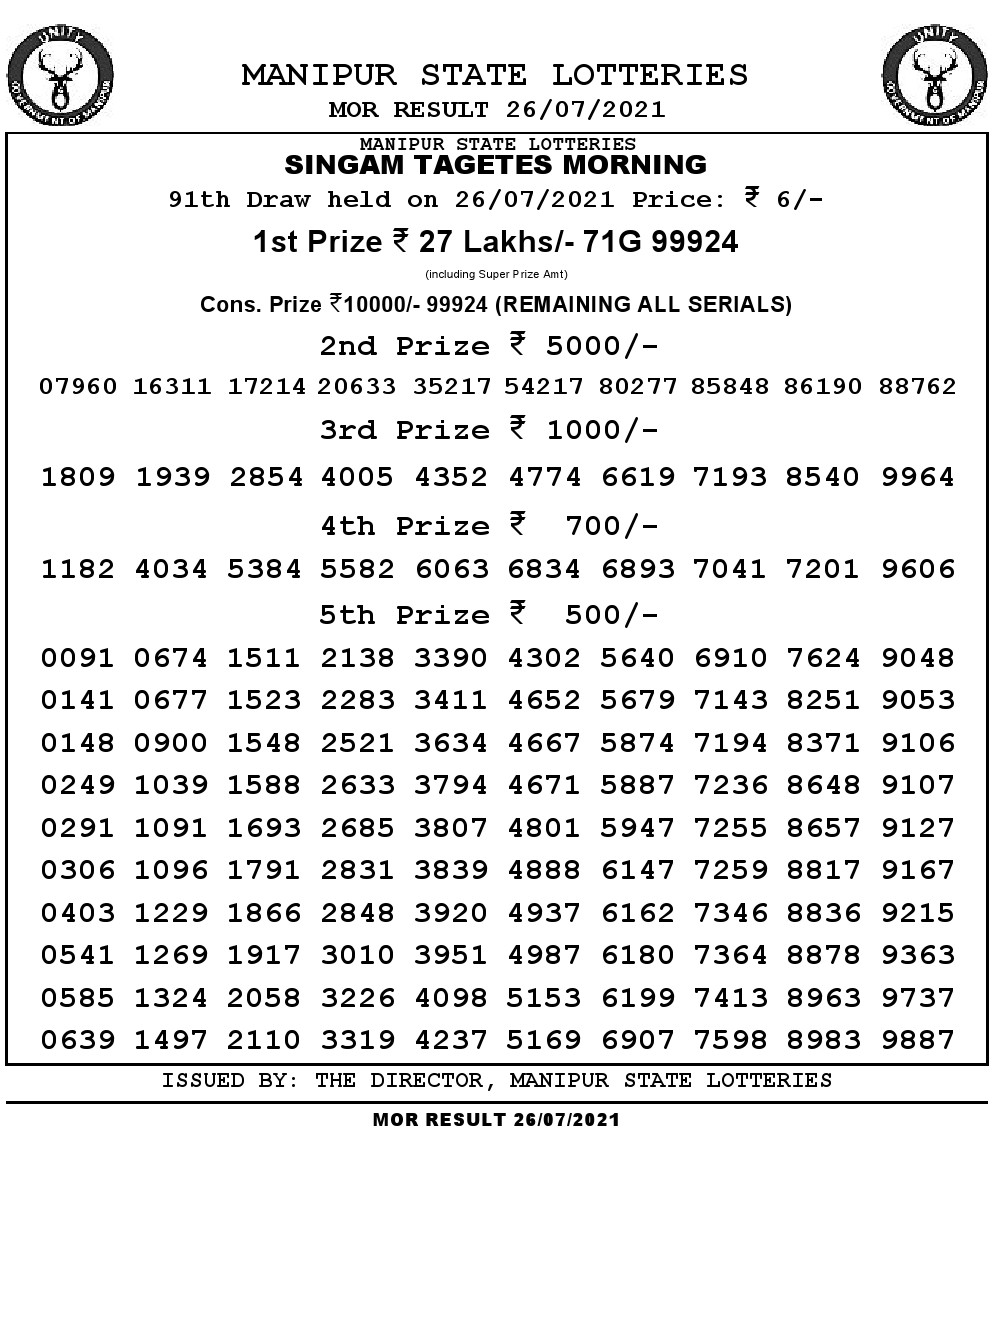 Manipur Lottery Result today 26/07/2021 singam 11am pdf download